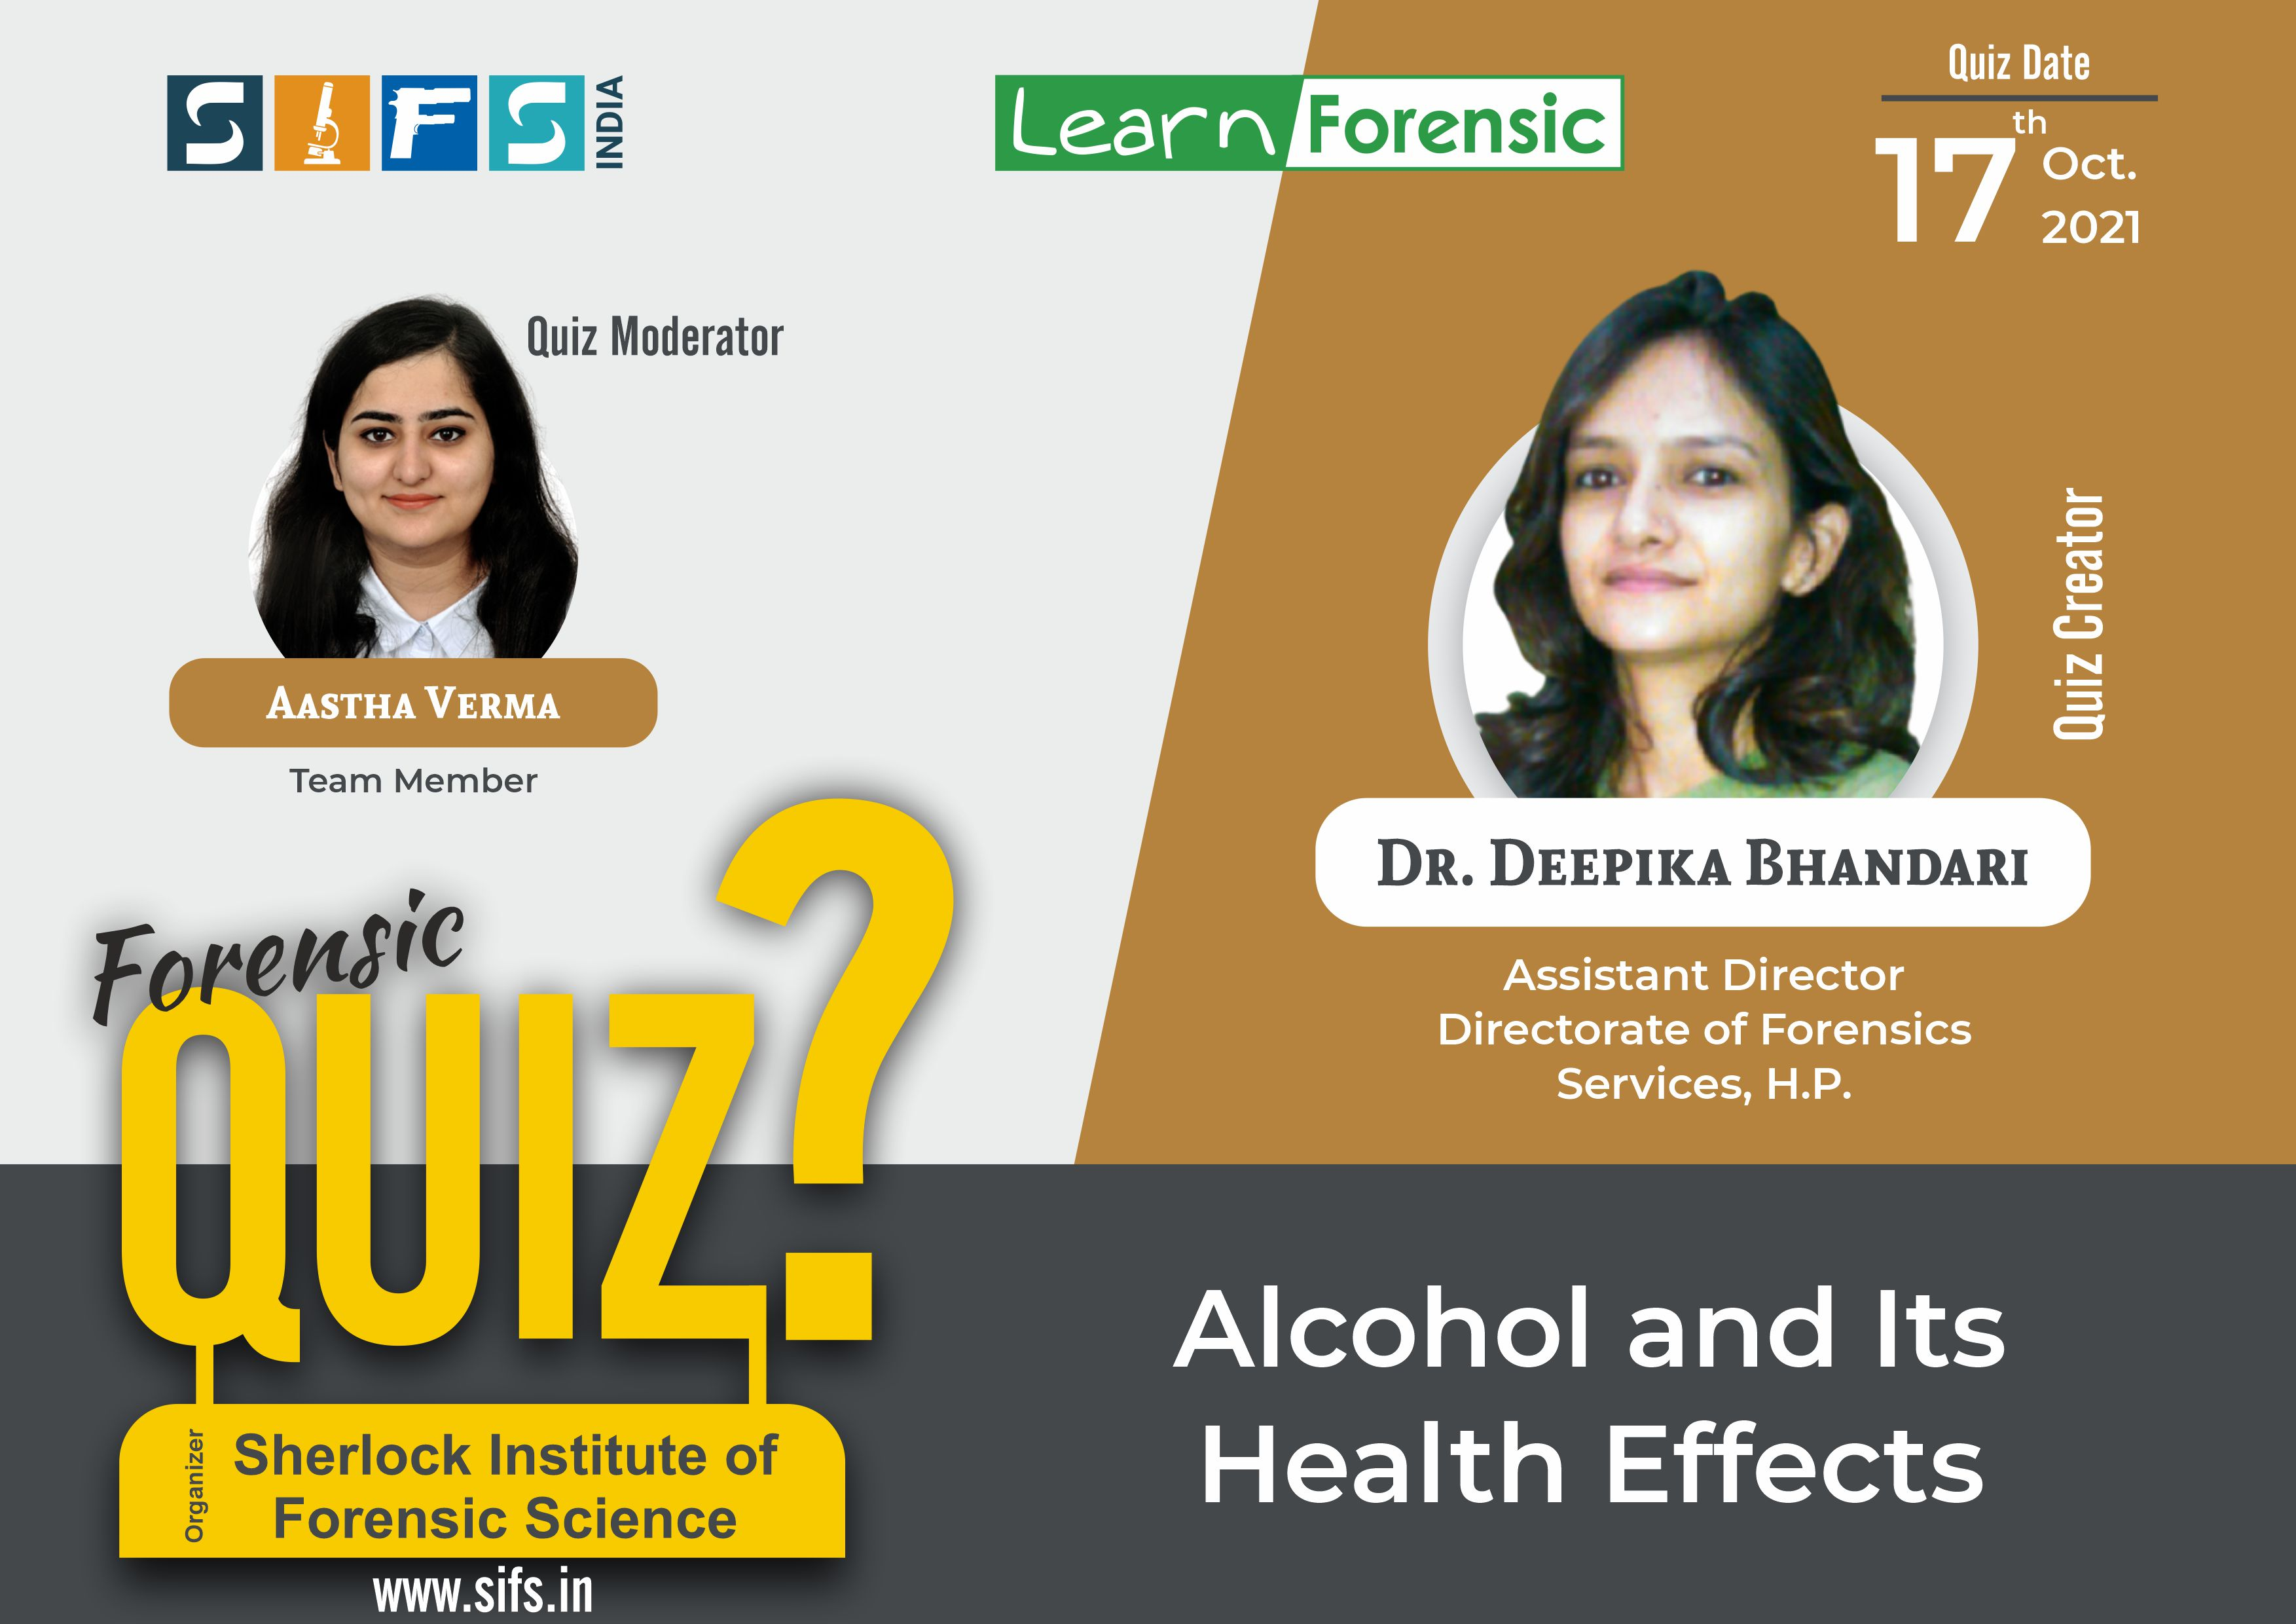 Alcohol and Its Health Effects